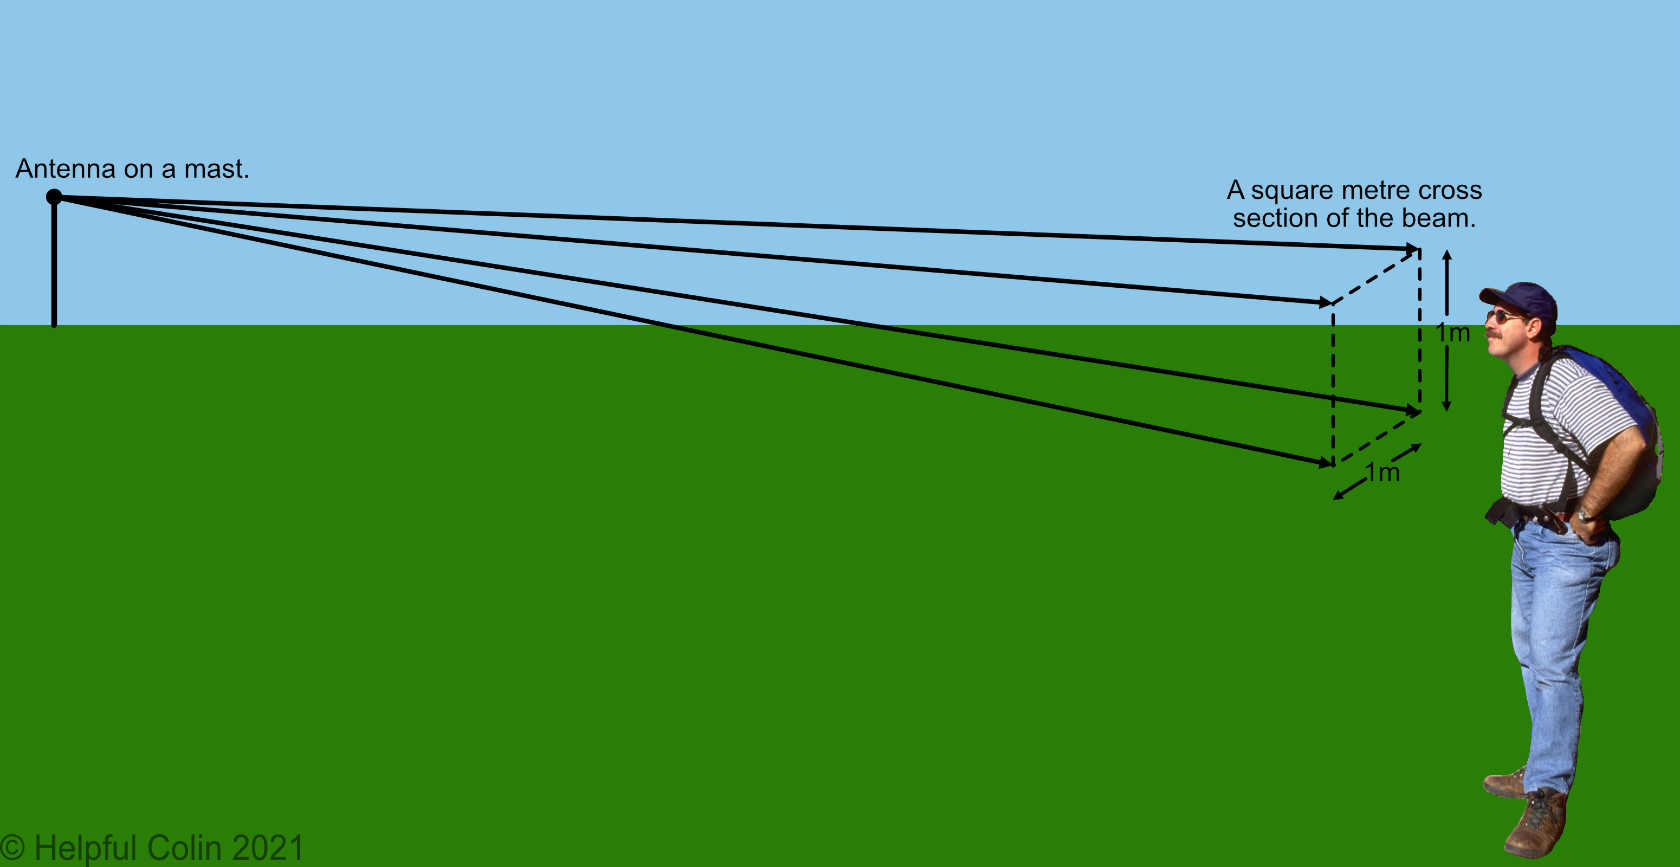 An example of a square metre of space/air through which an amount of power passes.